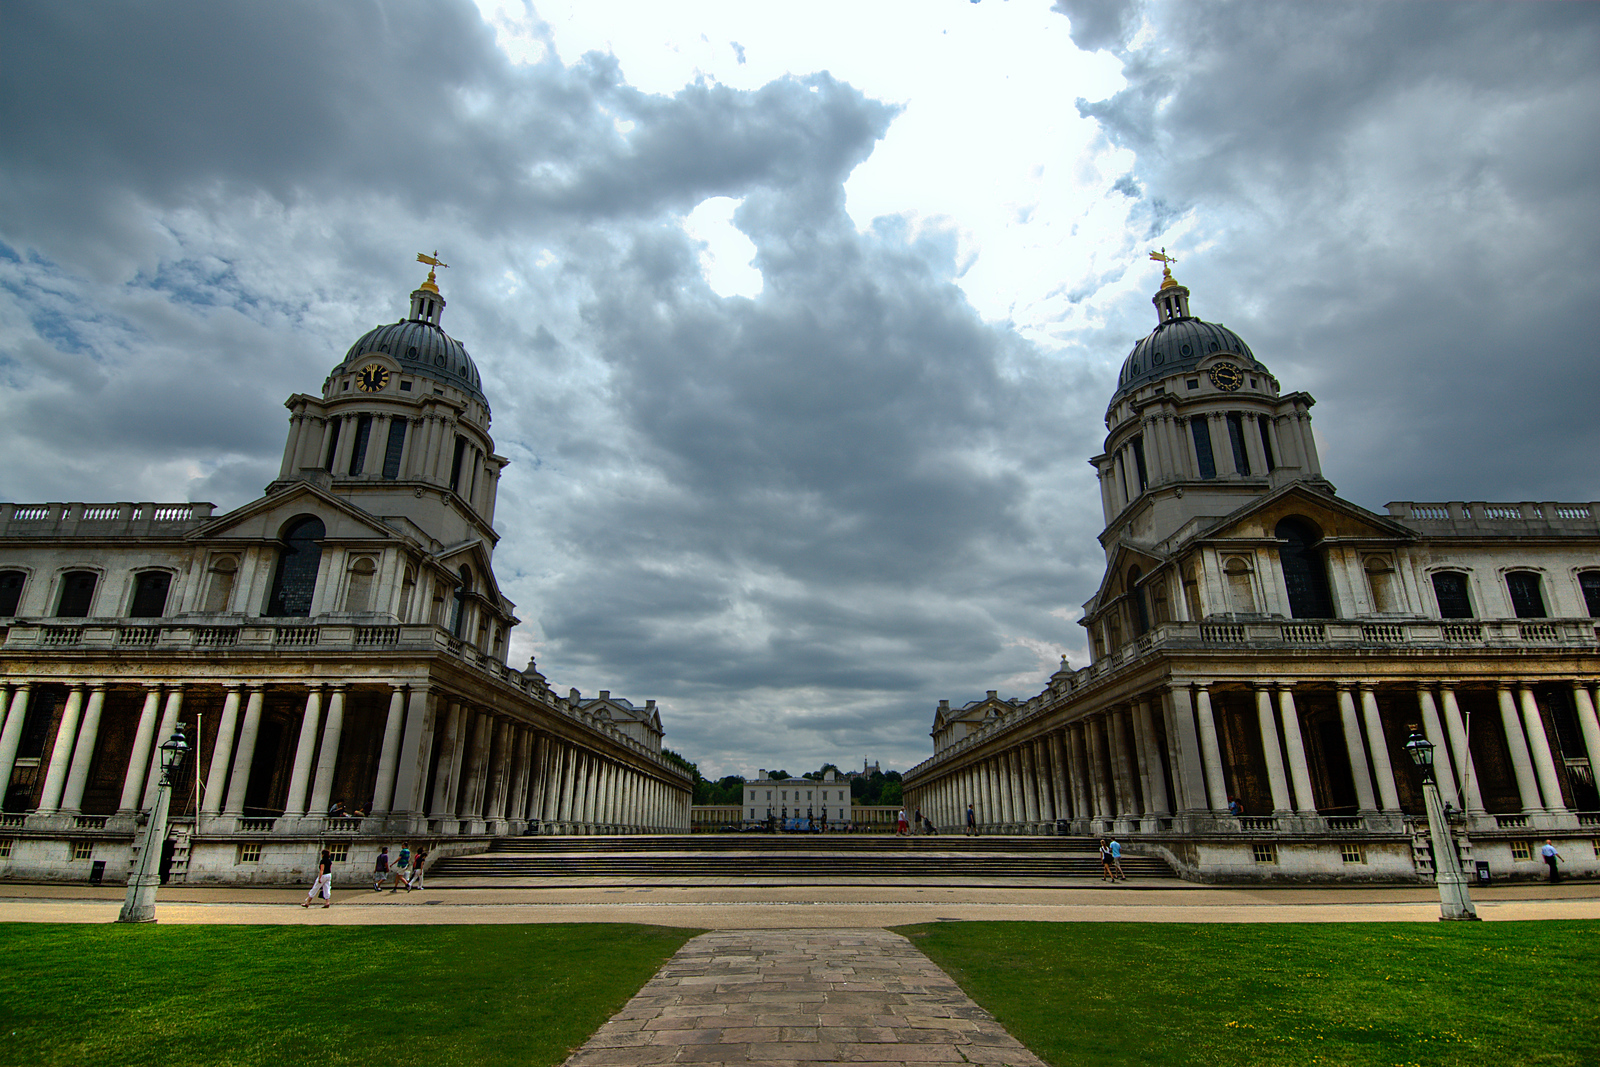 Maritime Greenwich UNESCO World Heritage Site, London